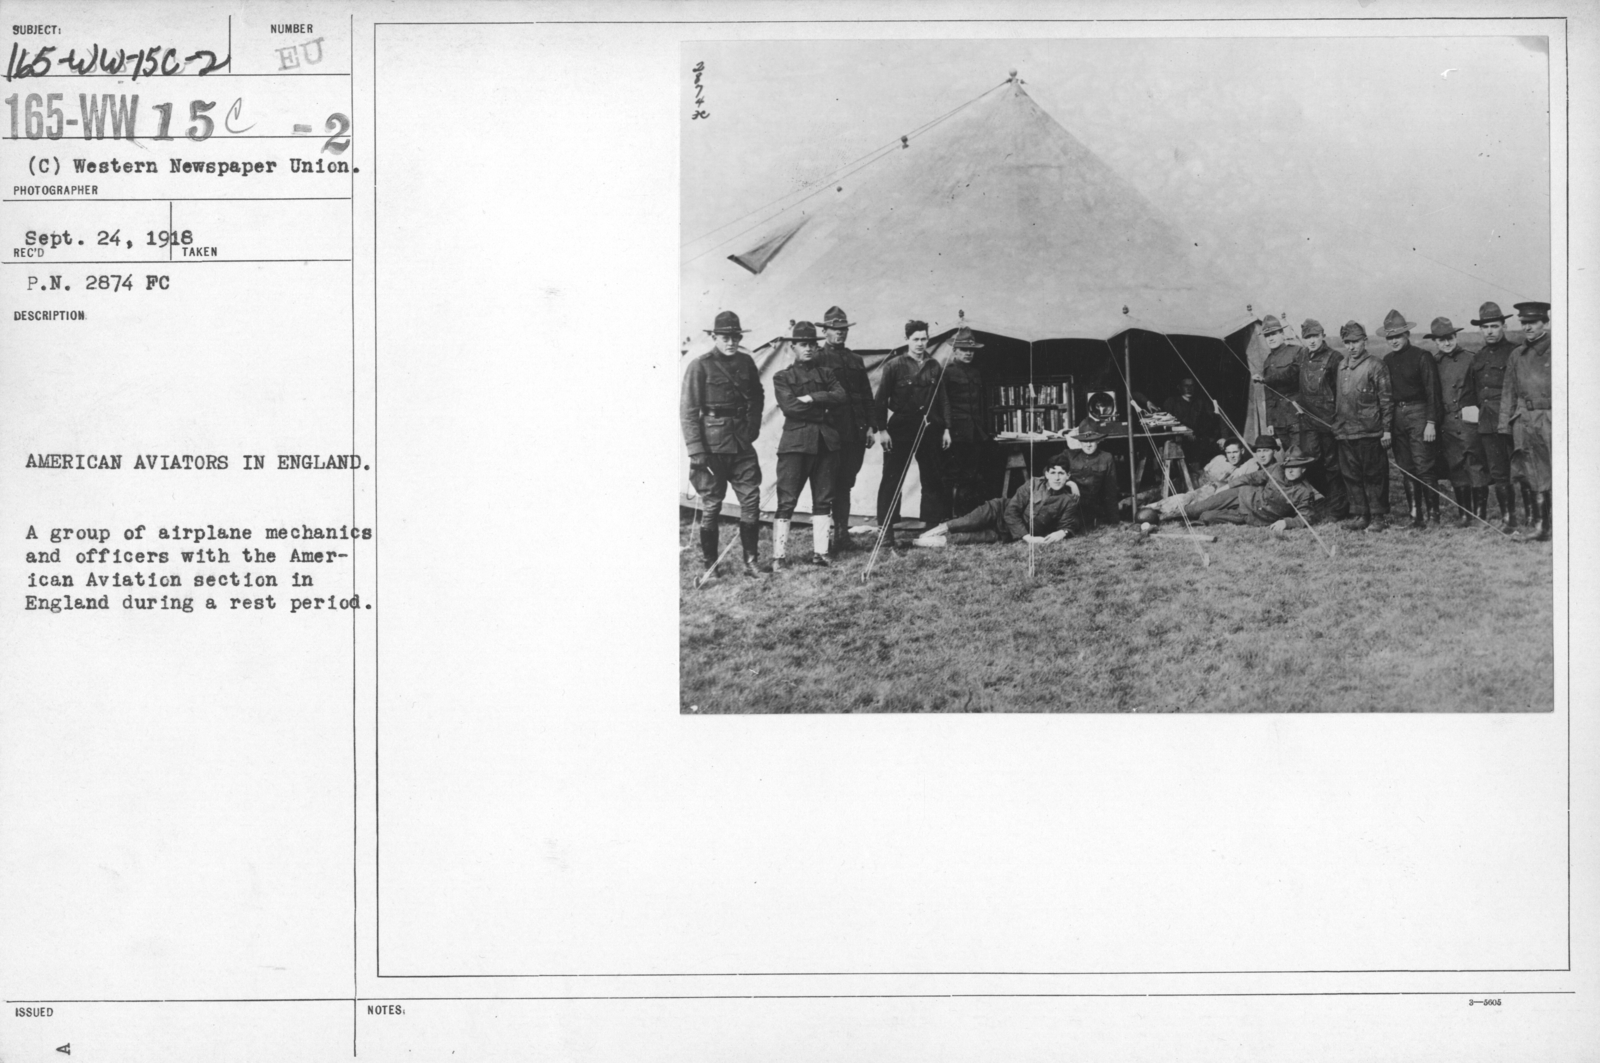 Airplanes - Operations - American Aviators in England. A group of airplane mechanics and officers with the American Aviation section in England during a rest period